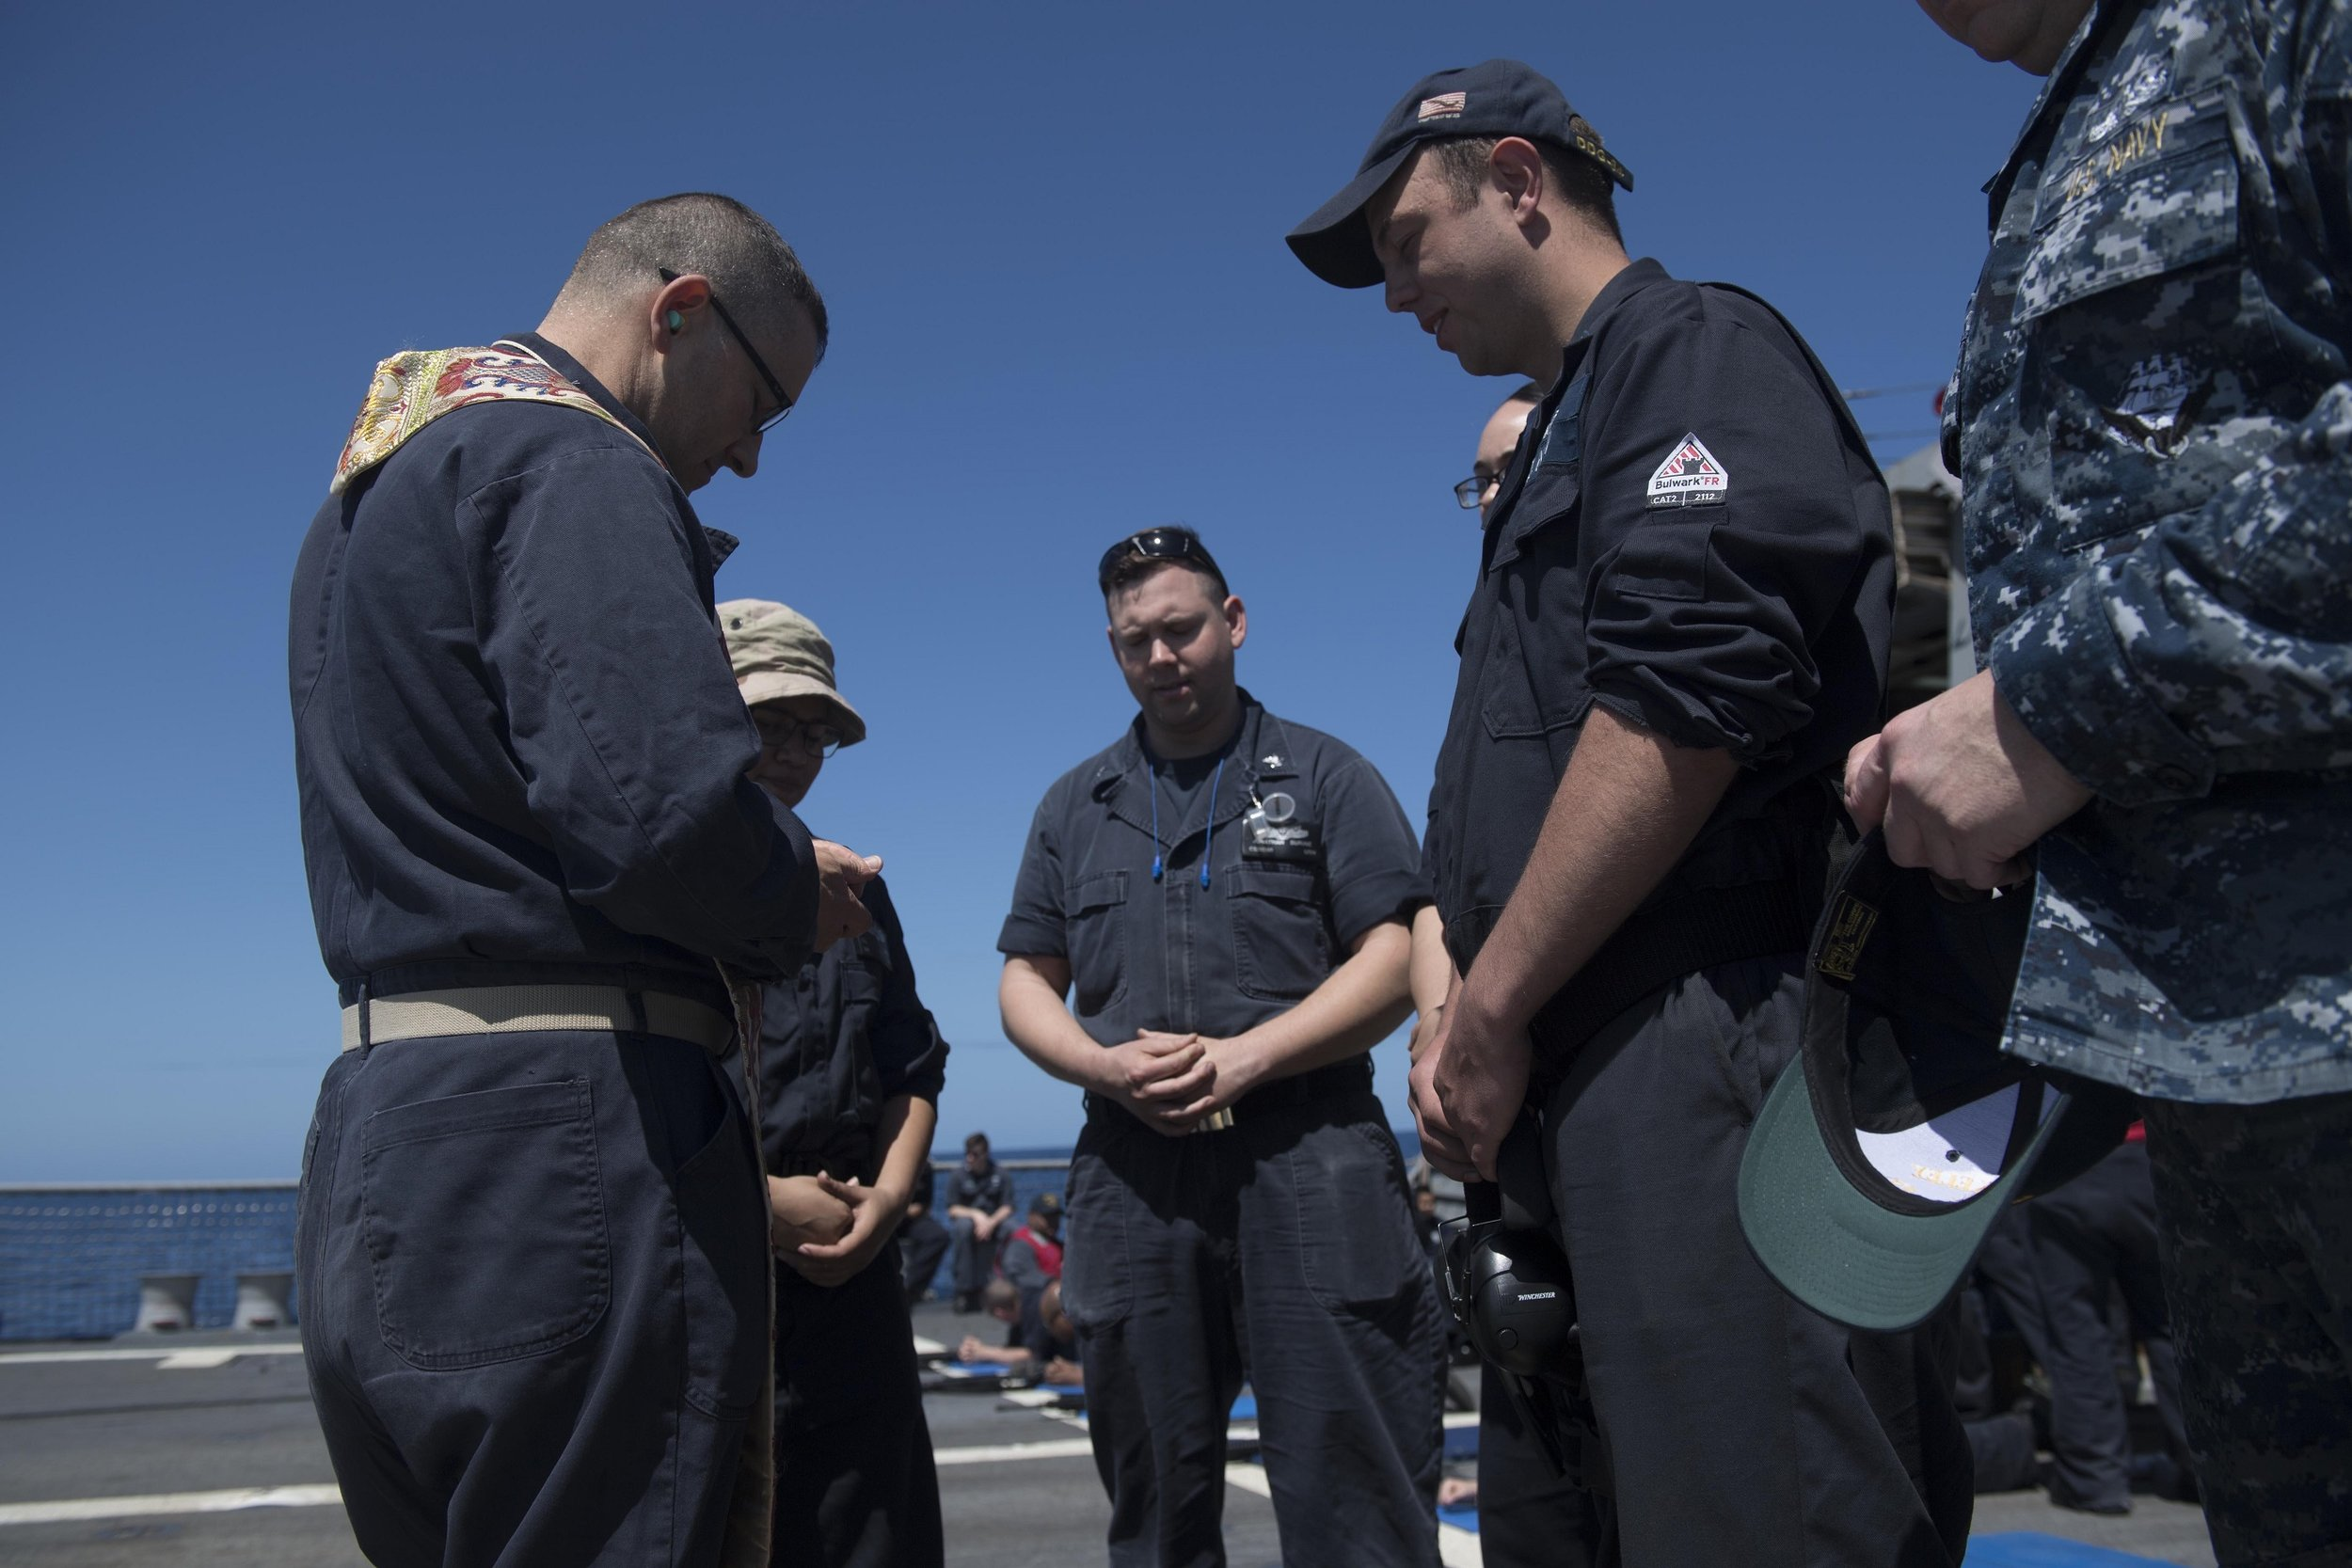 Chaplain Philip Webster - prays with sailors in the US Navy aboard the USS BULKELEY